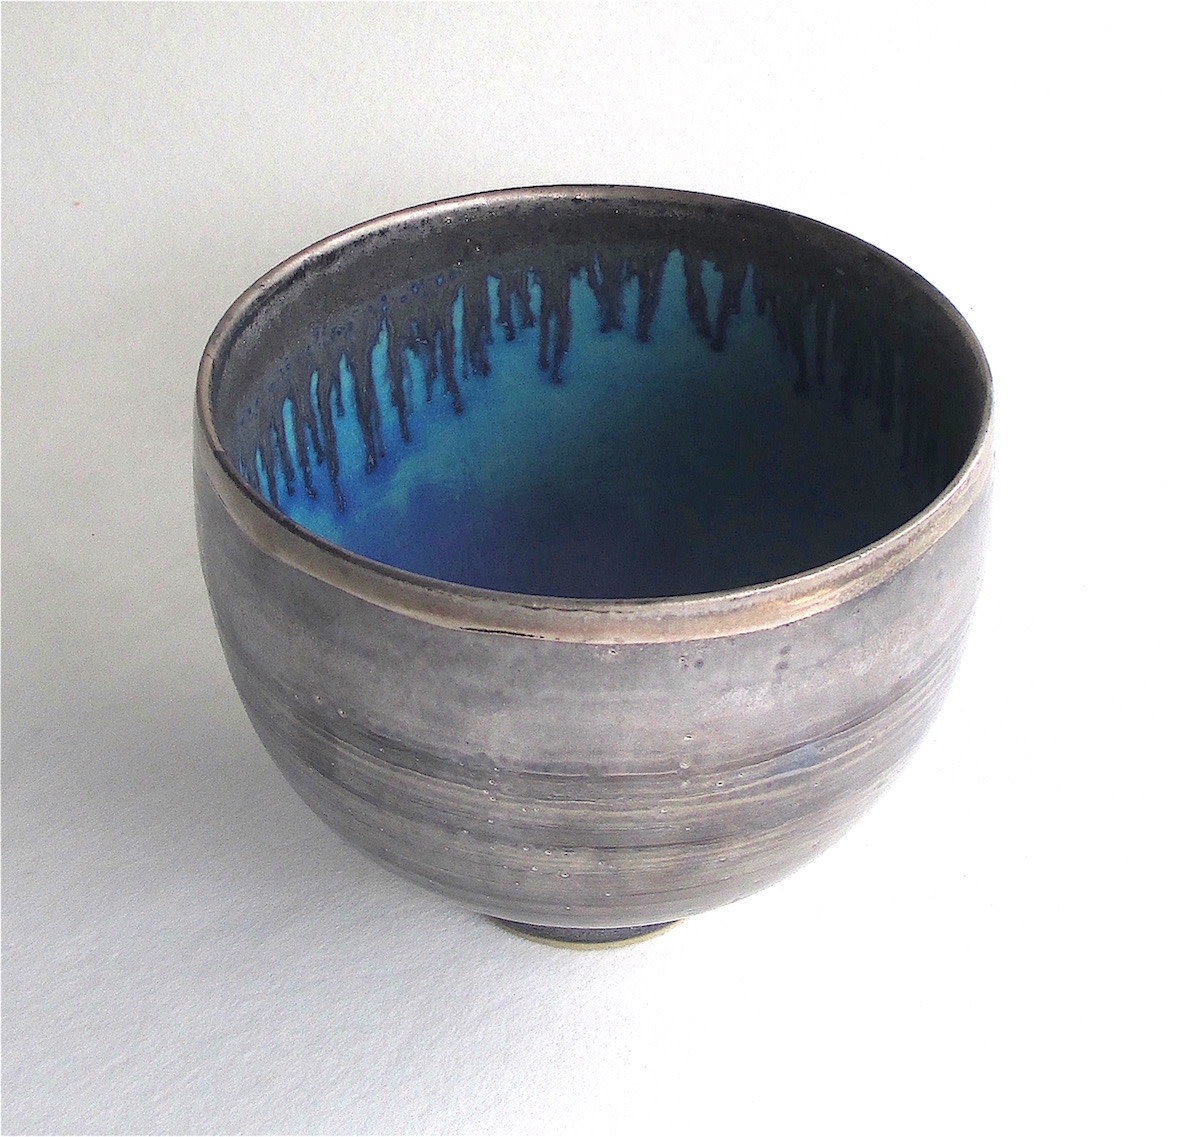 "<span class=""link fancybox-details-link""><a href=""/artists/44-sarah-perry/works/7305-sarah-perry-tall-silver-lustred-blue-pool-bowl-2020/"">View Detail Page</a></span><div class=""artist""><strong>Sarah Perry</strong></div> b. 1945 <div class=""title""><em>Tall Silver Lustred Blue Pool Bowl</em>, 2020</div> <div class=""signed_and_dated"">impressed with the artist's seal mark 'SP'</div> <div class=""medium"">stoneware </div> <div class=""dimensions"">d 15 x h 13 cm</div><div class=""copyright_line"">Ownart: £22 x 10 Months, 0% APR</div>"